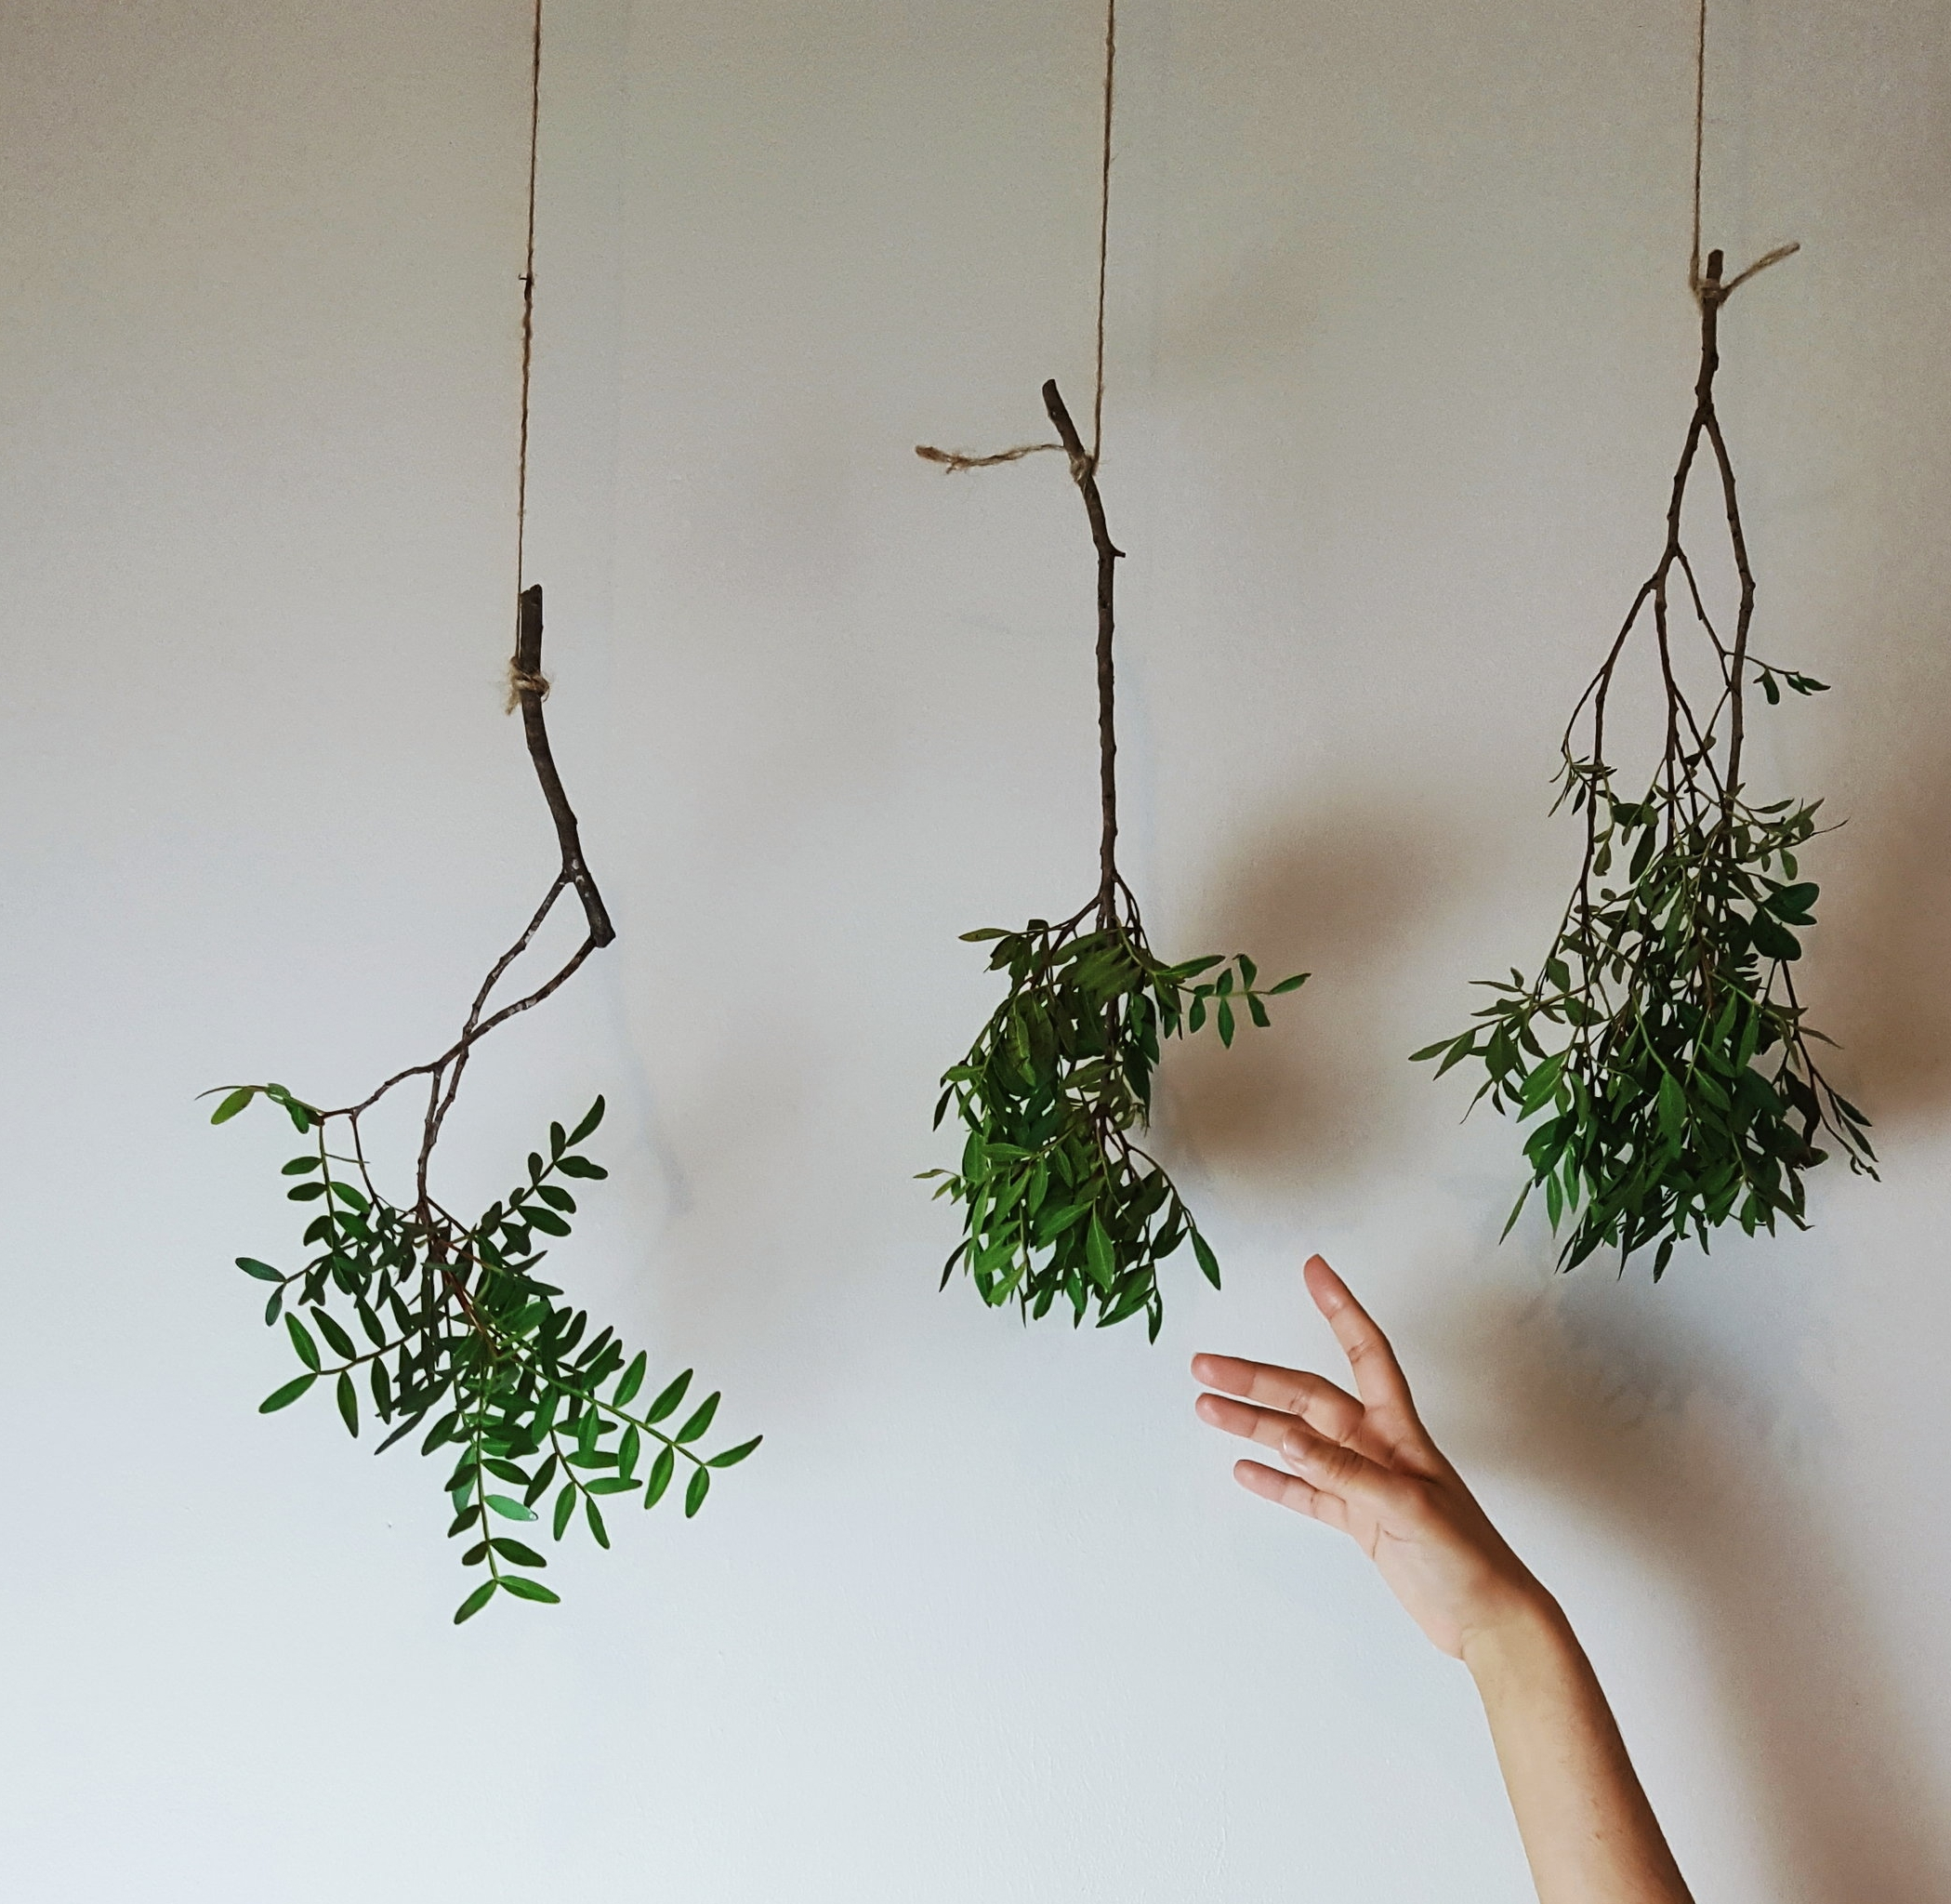 Energise your morning routine with the details - observing nature, cleaning work space, good playlist, verdure room mist.